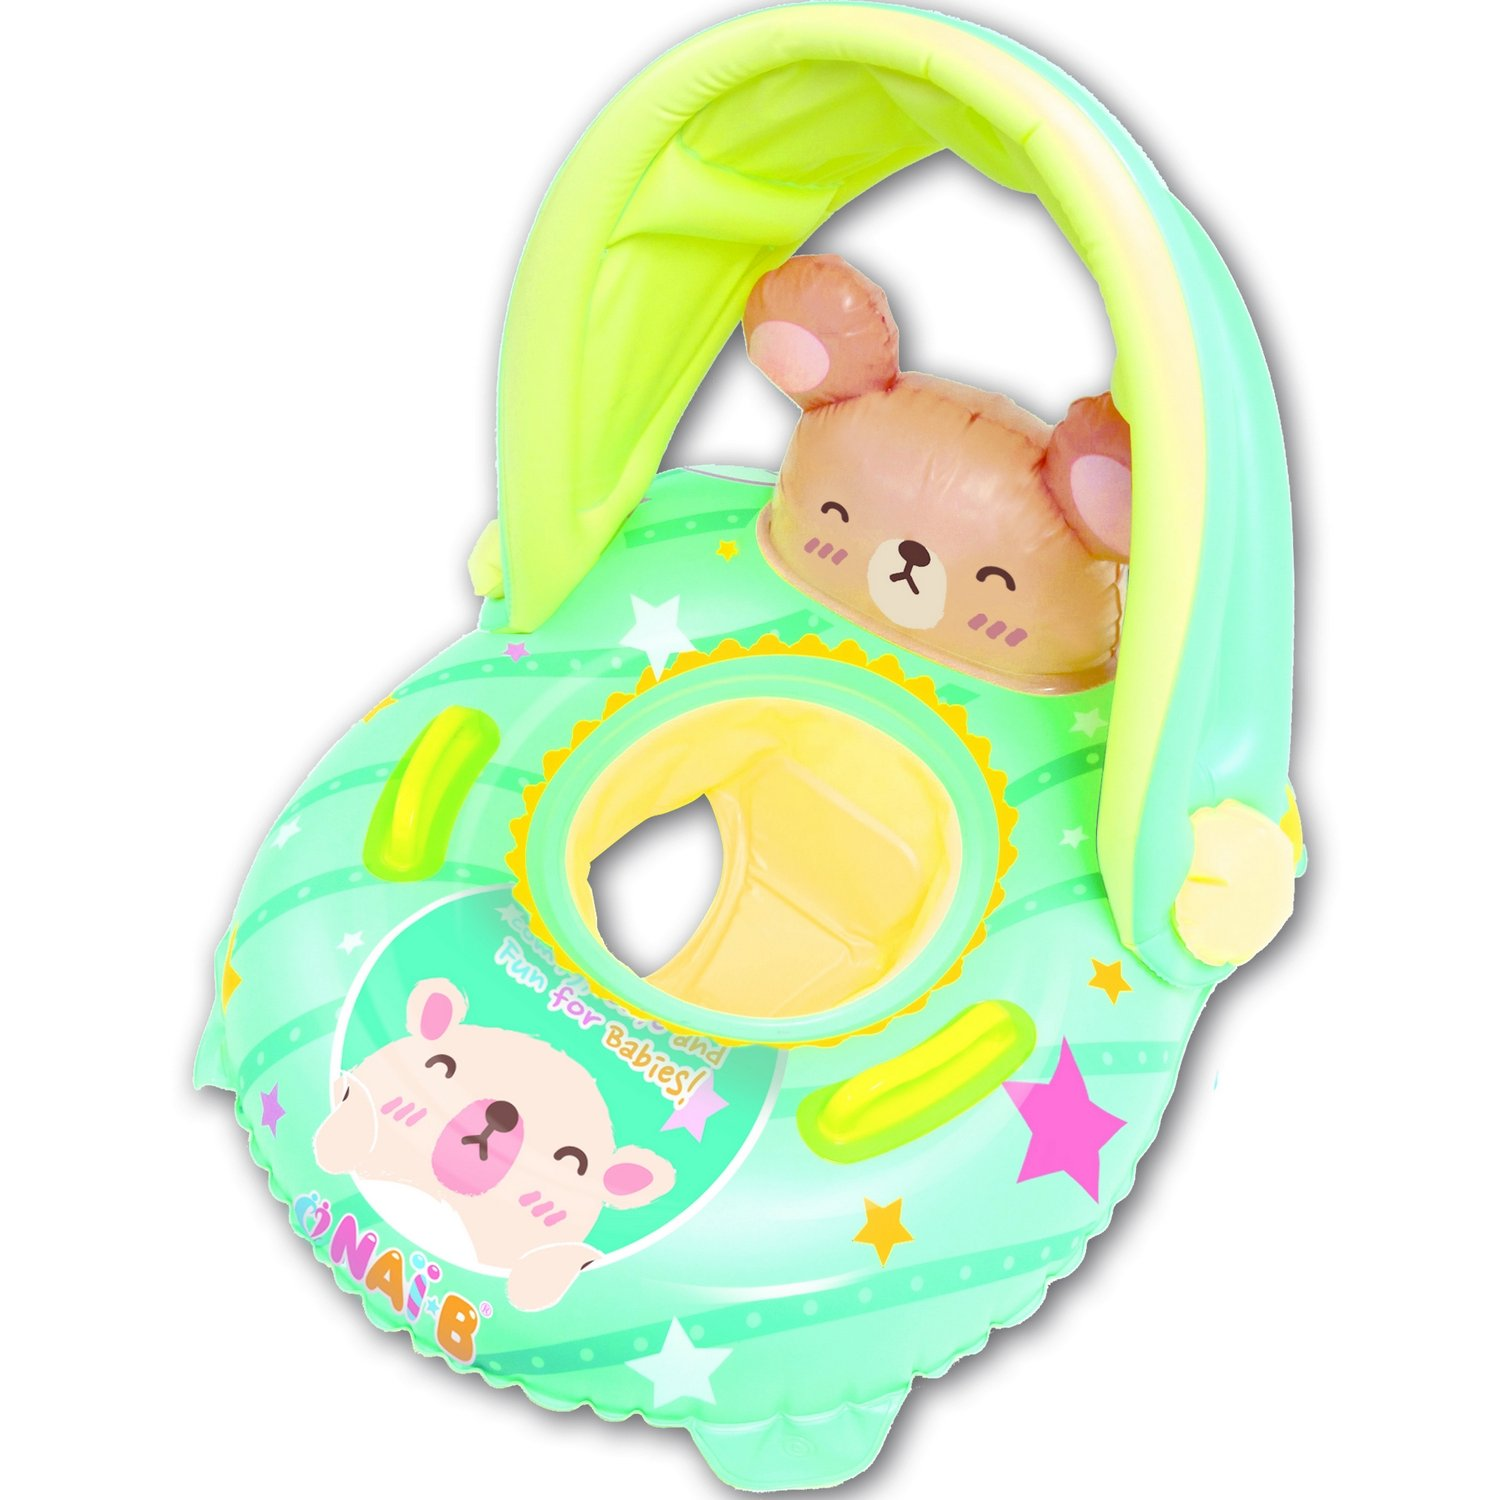 NAI-B K Hamster Cushion Parasol Baby Swim Float - Mint